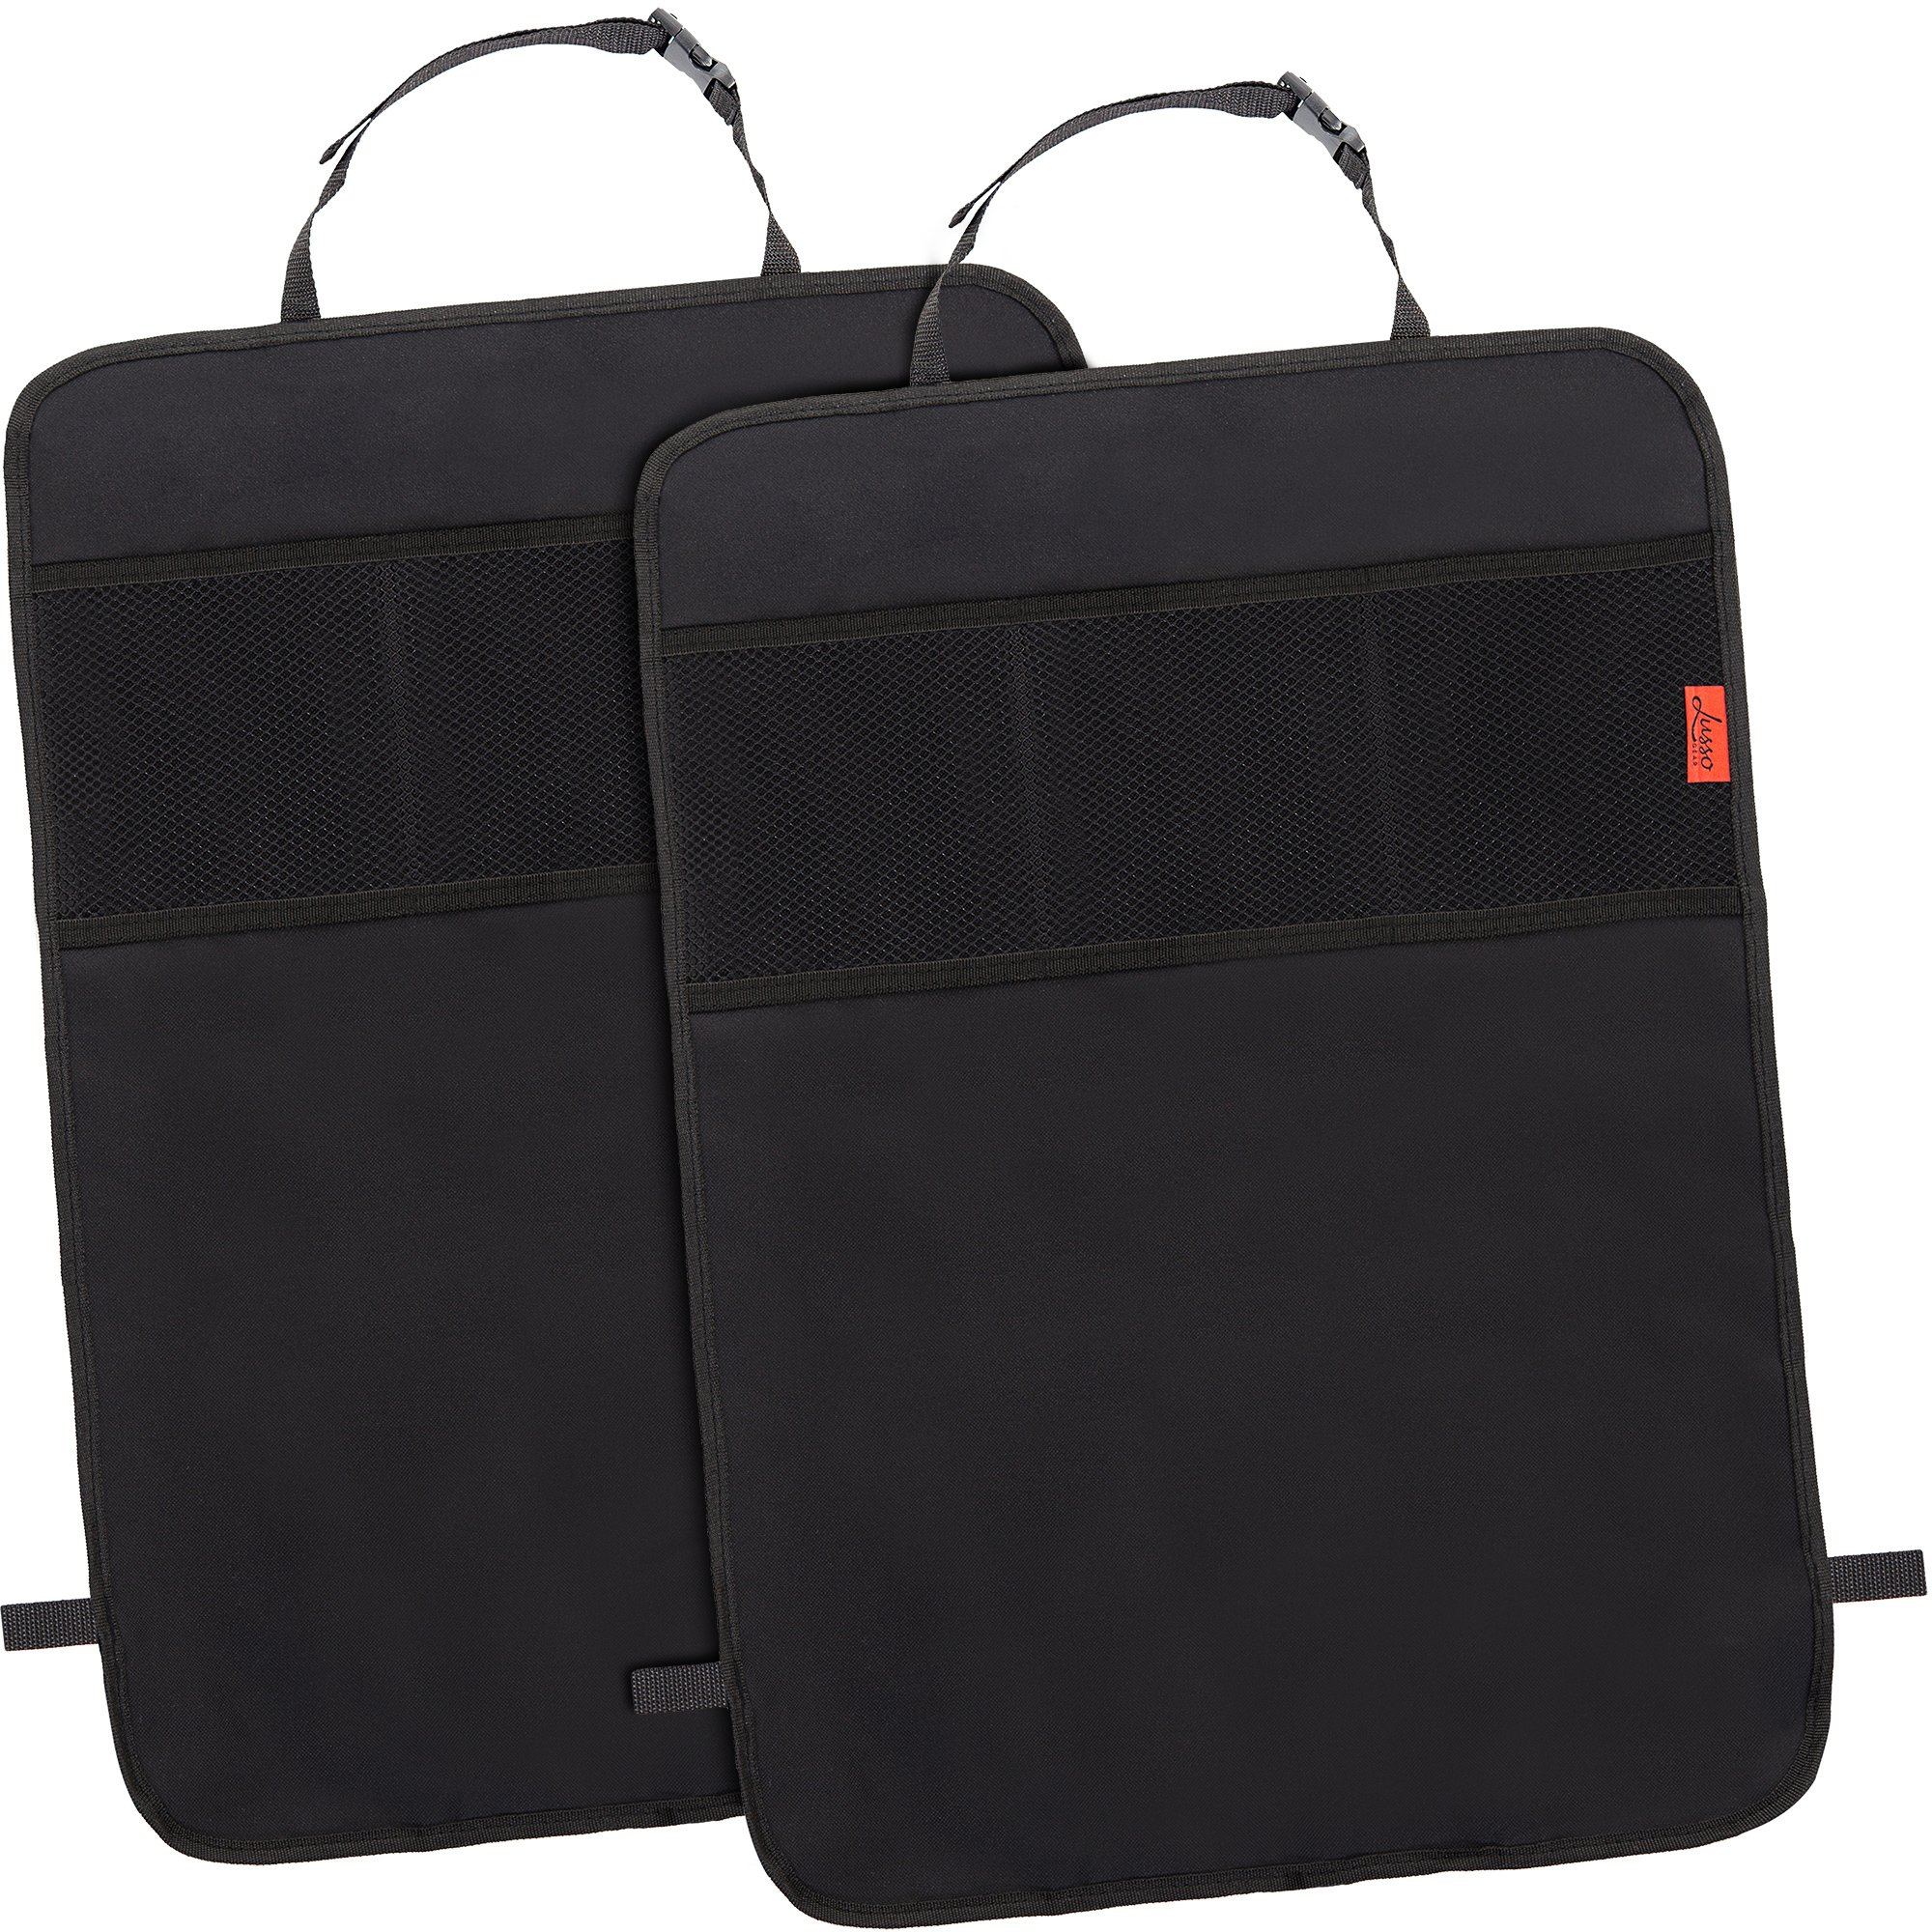 Seat Back Protectors (2 pack) - Car Kick Mats with Odor Free, Premium Waterproof Fabric, Reinforced Corners to Prevent Sag, and 3 Mesh Pockets for Great Storage